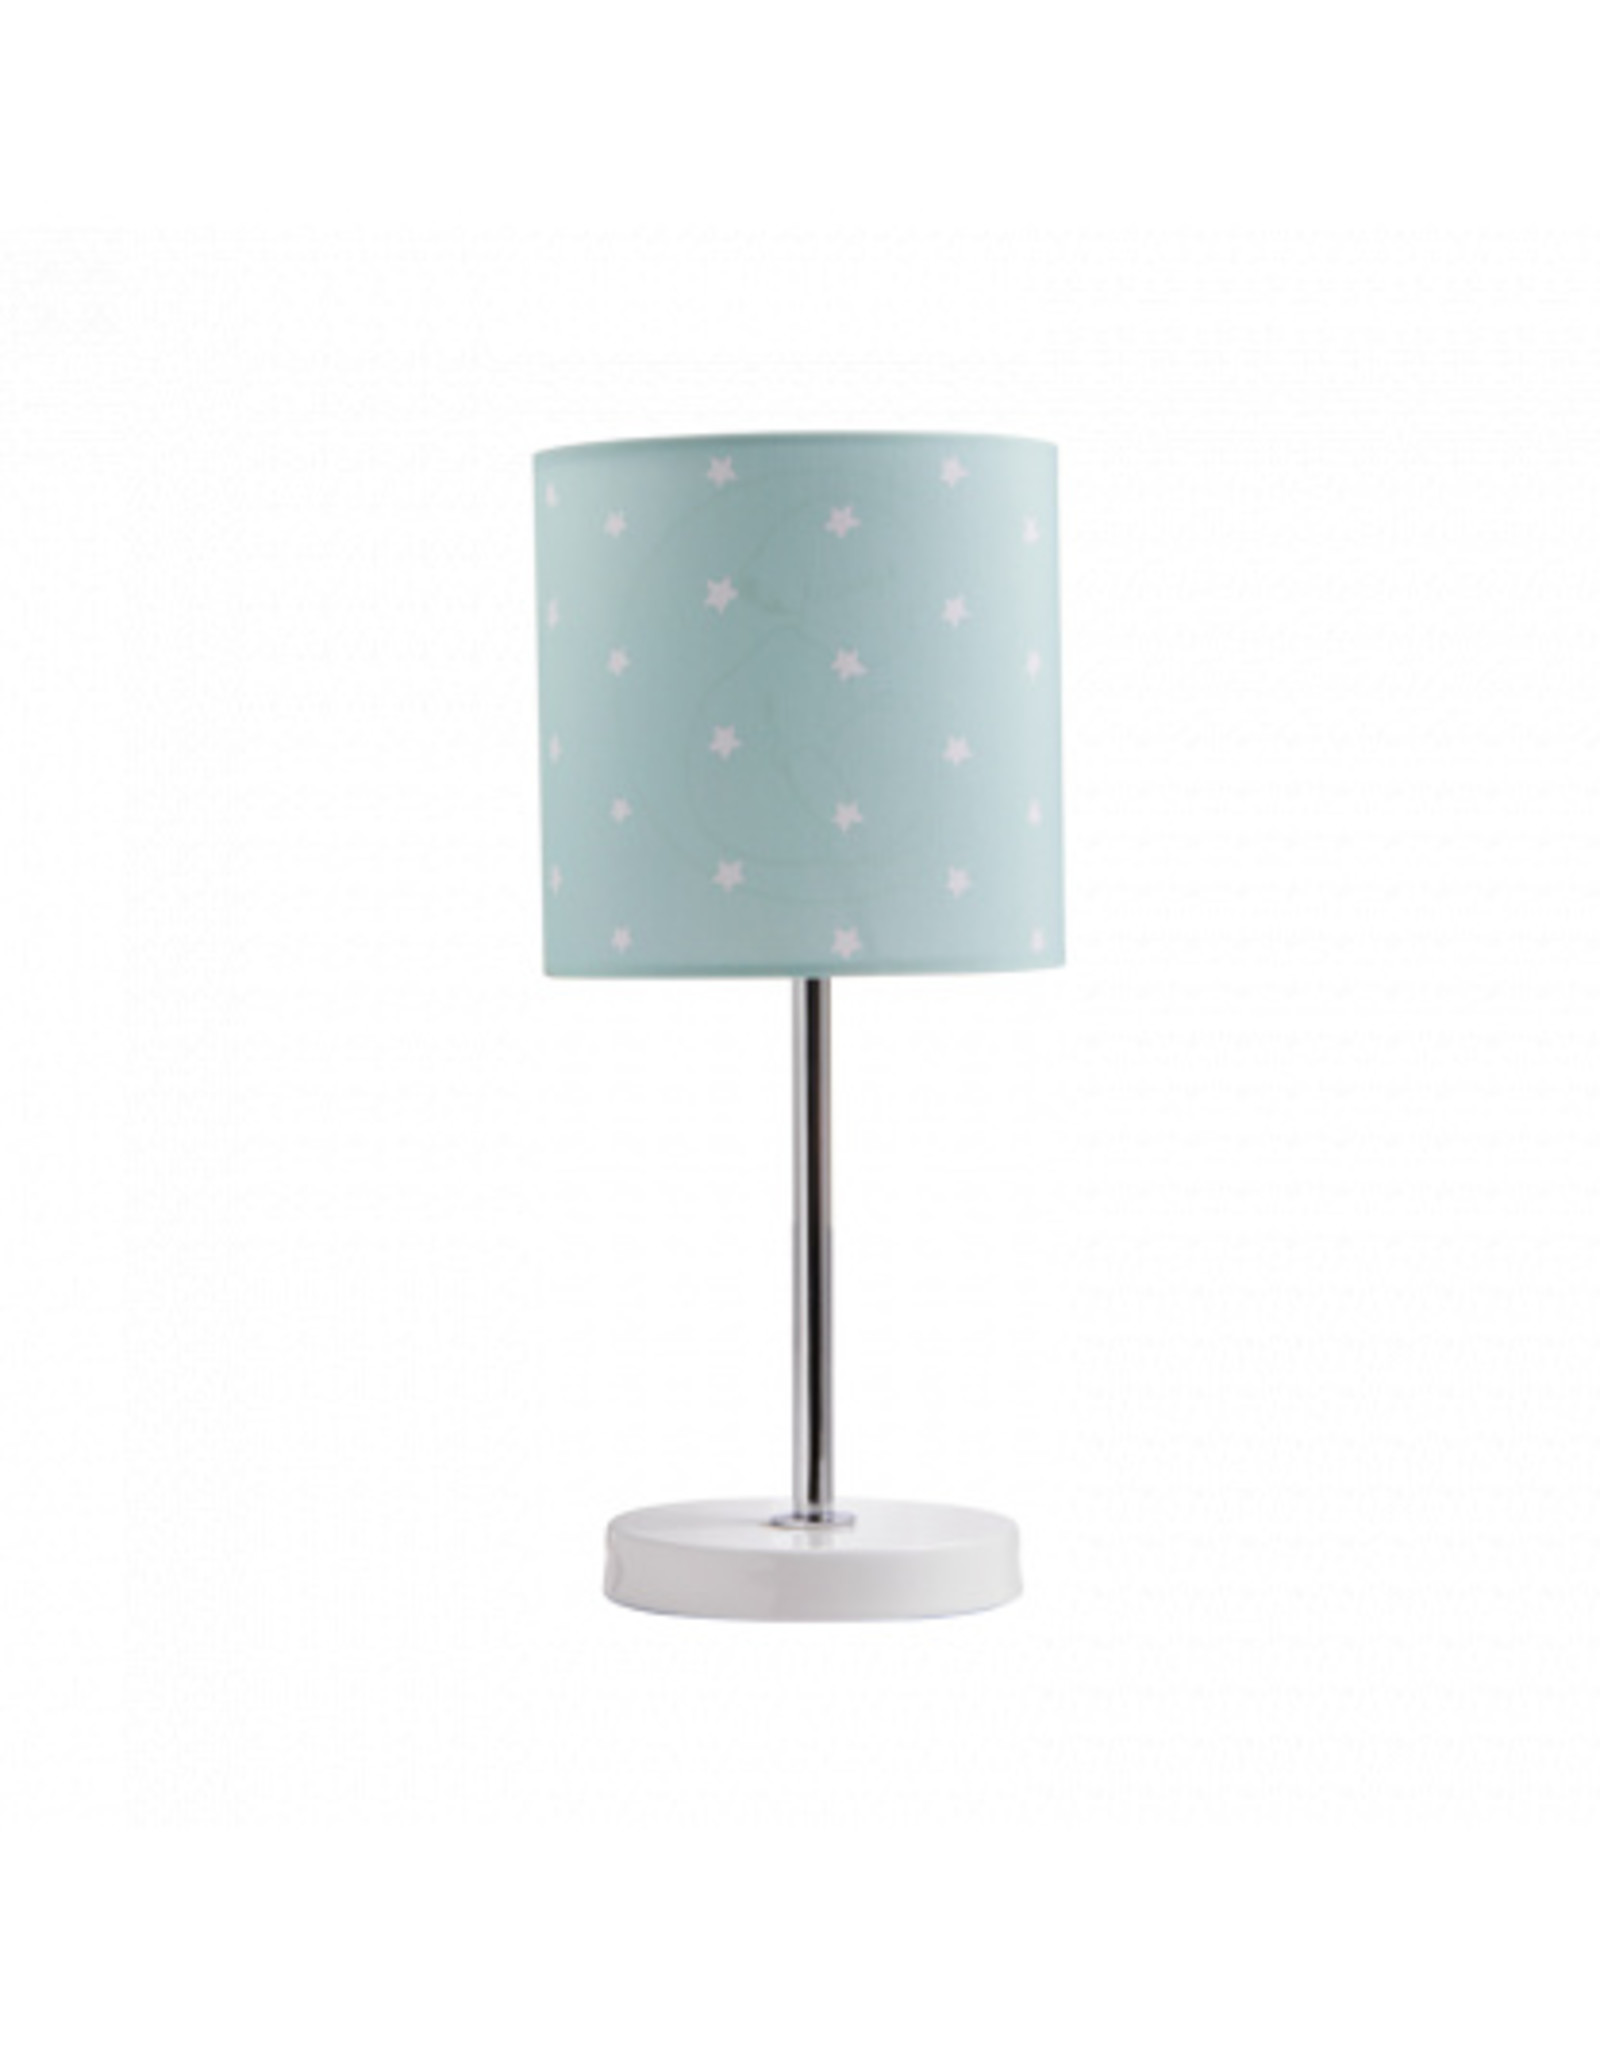 KIDS CONCEPT Mint Lamp